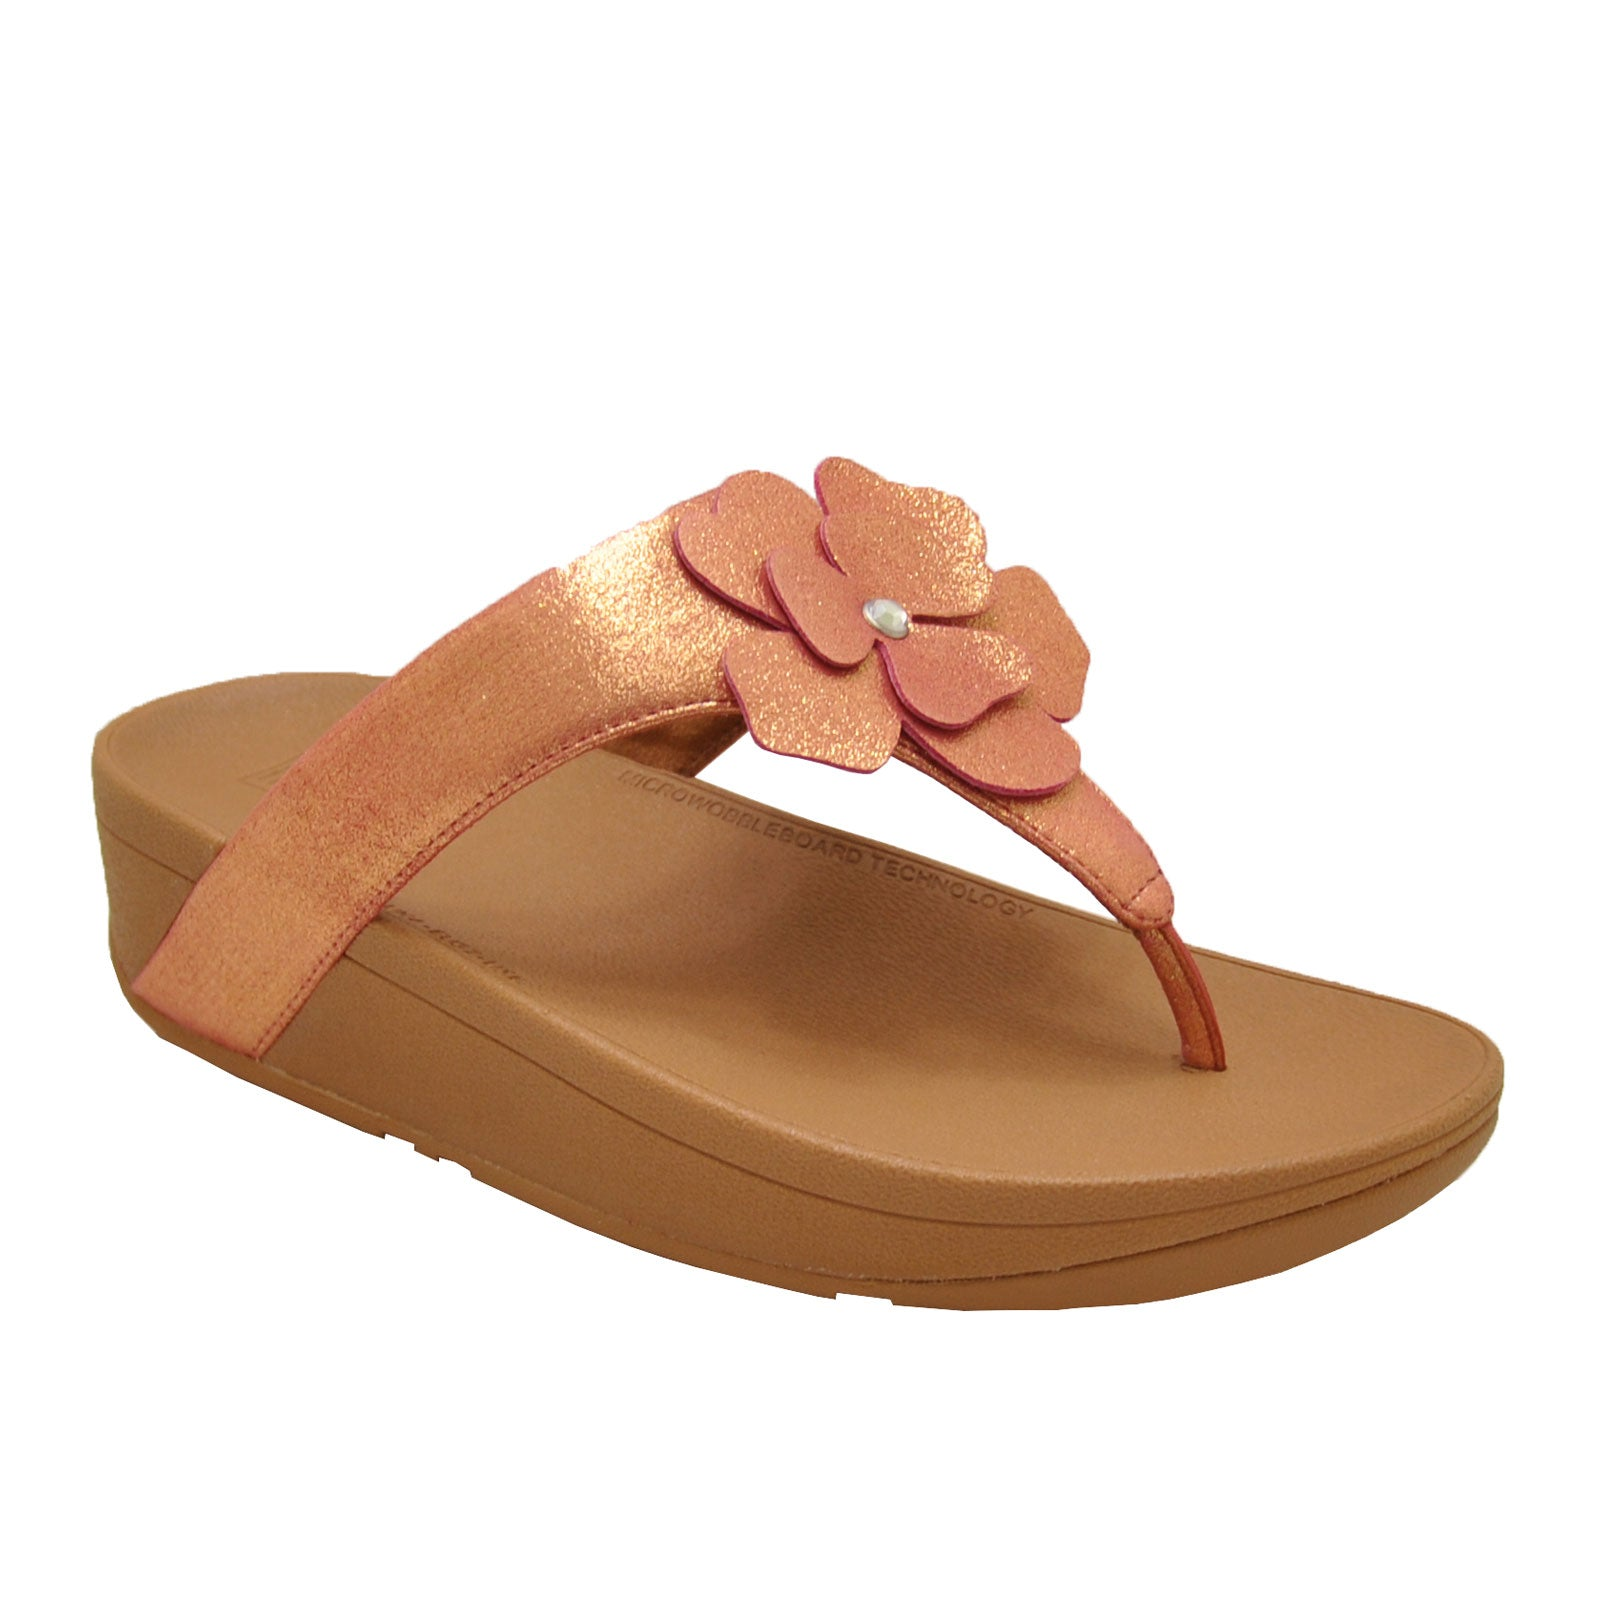 FitFlop Lottie Corsage Toe-Thong BF2-802